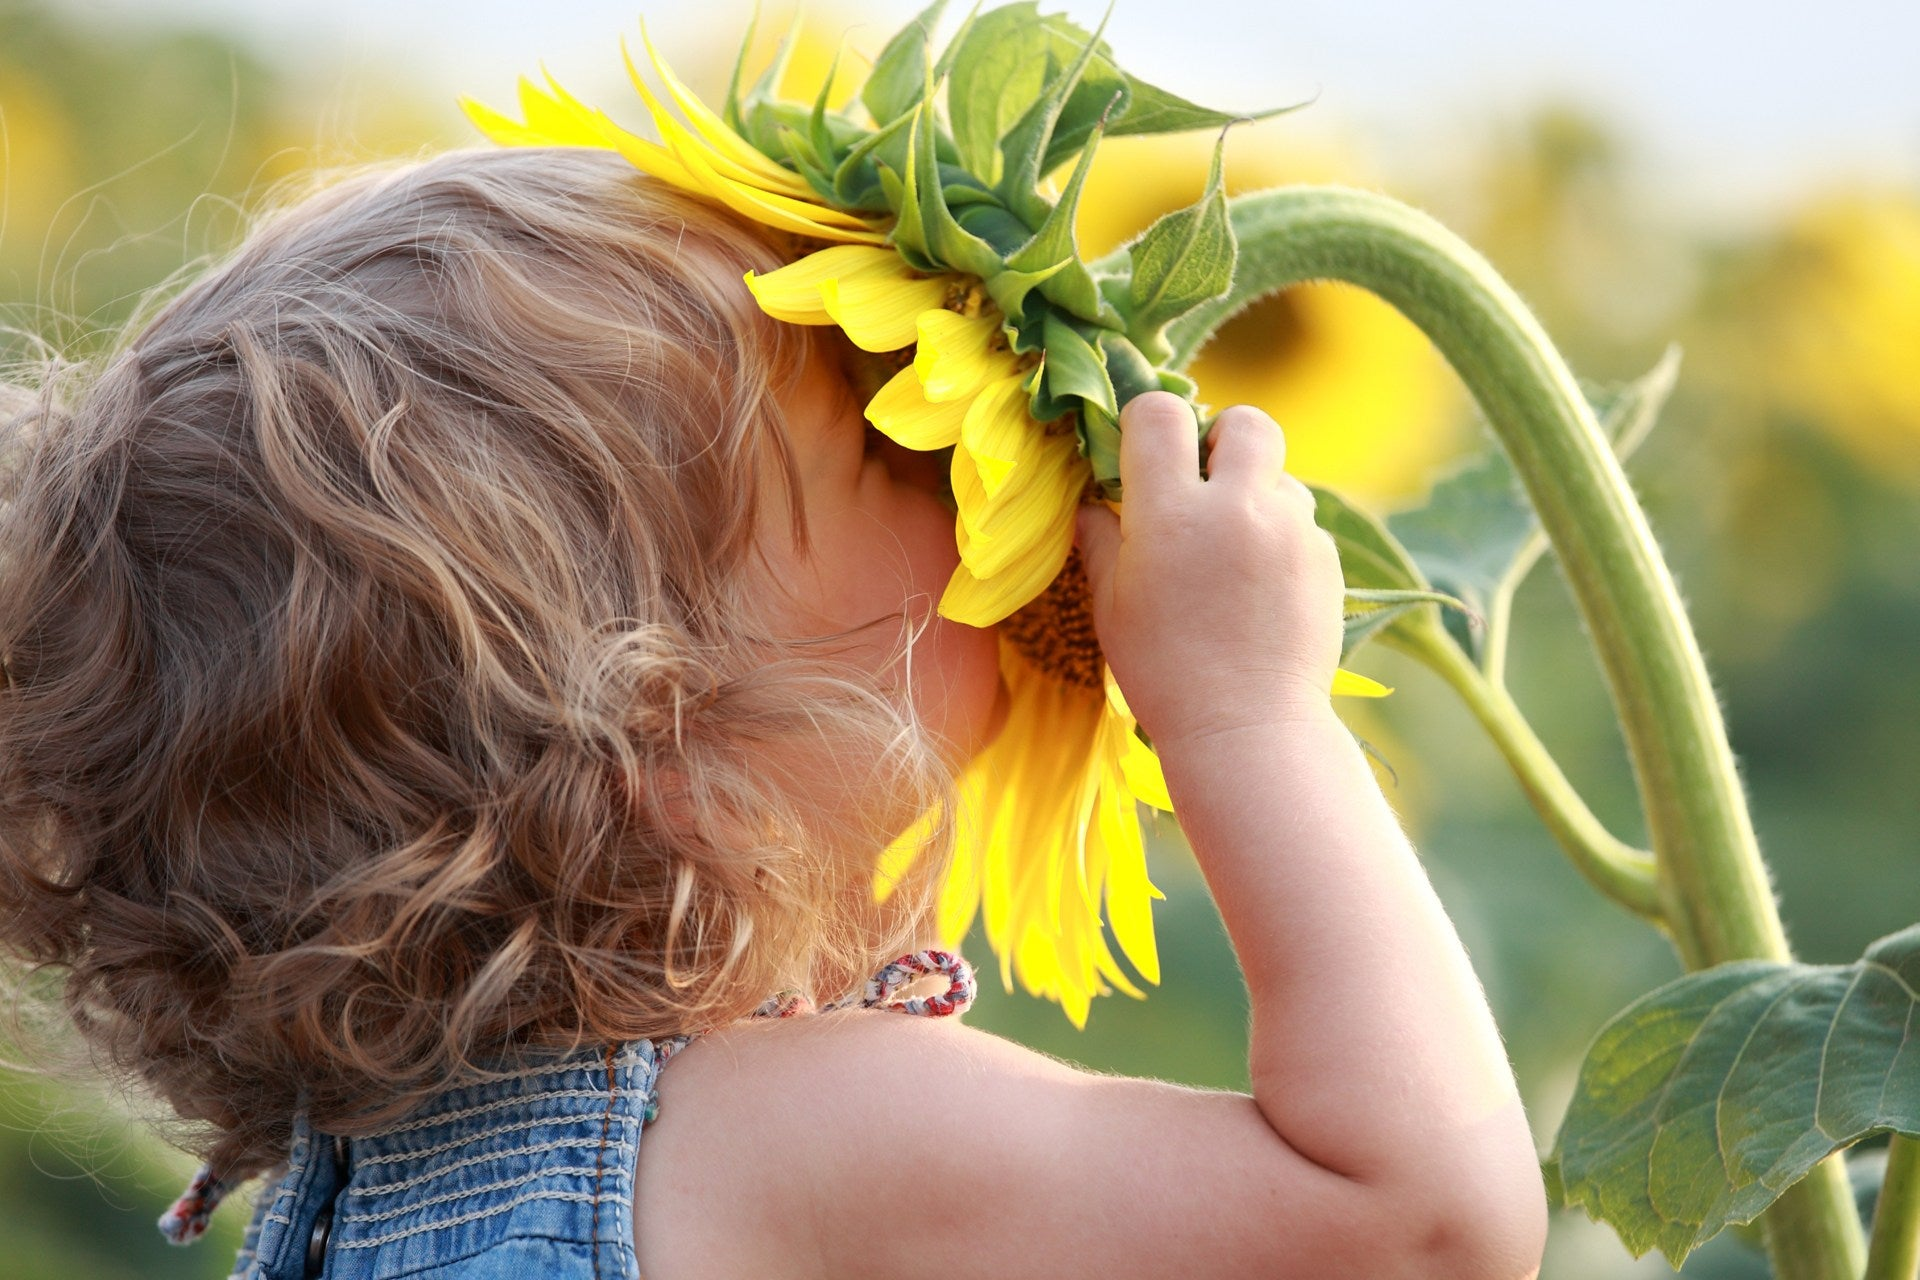 Child with Olfactory Dysfunction and autism sniffing a flower